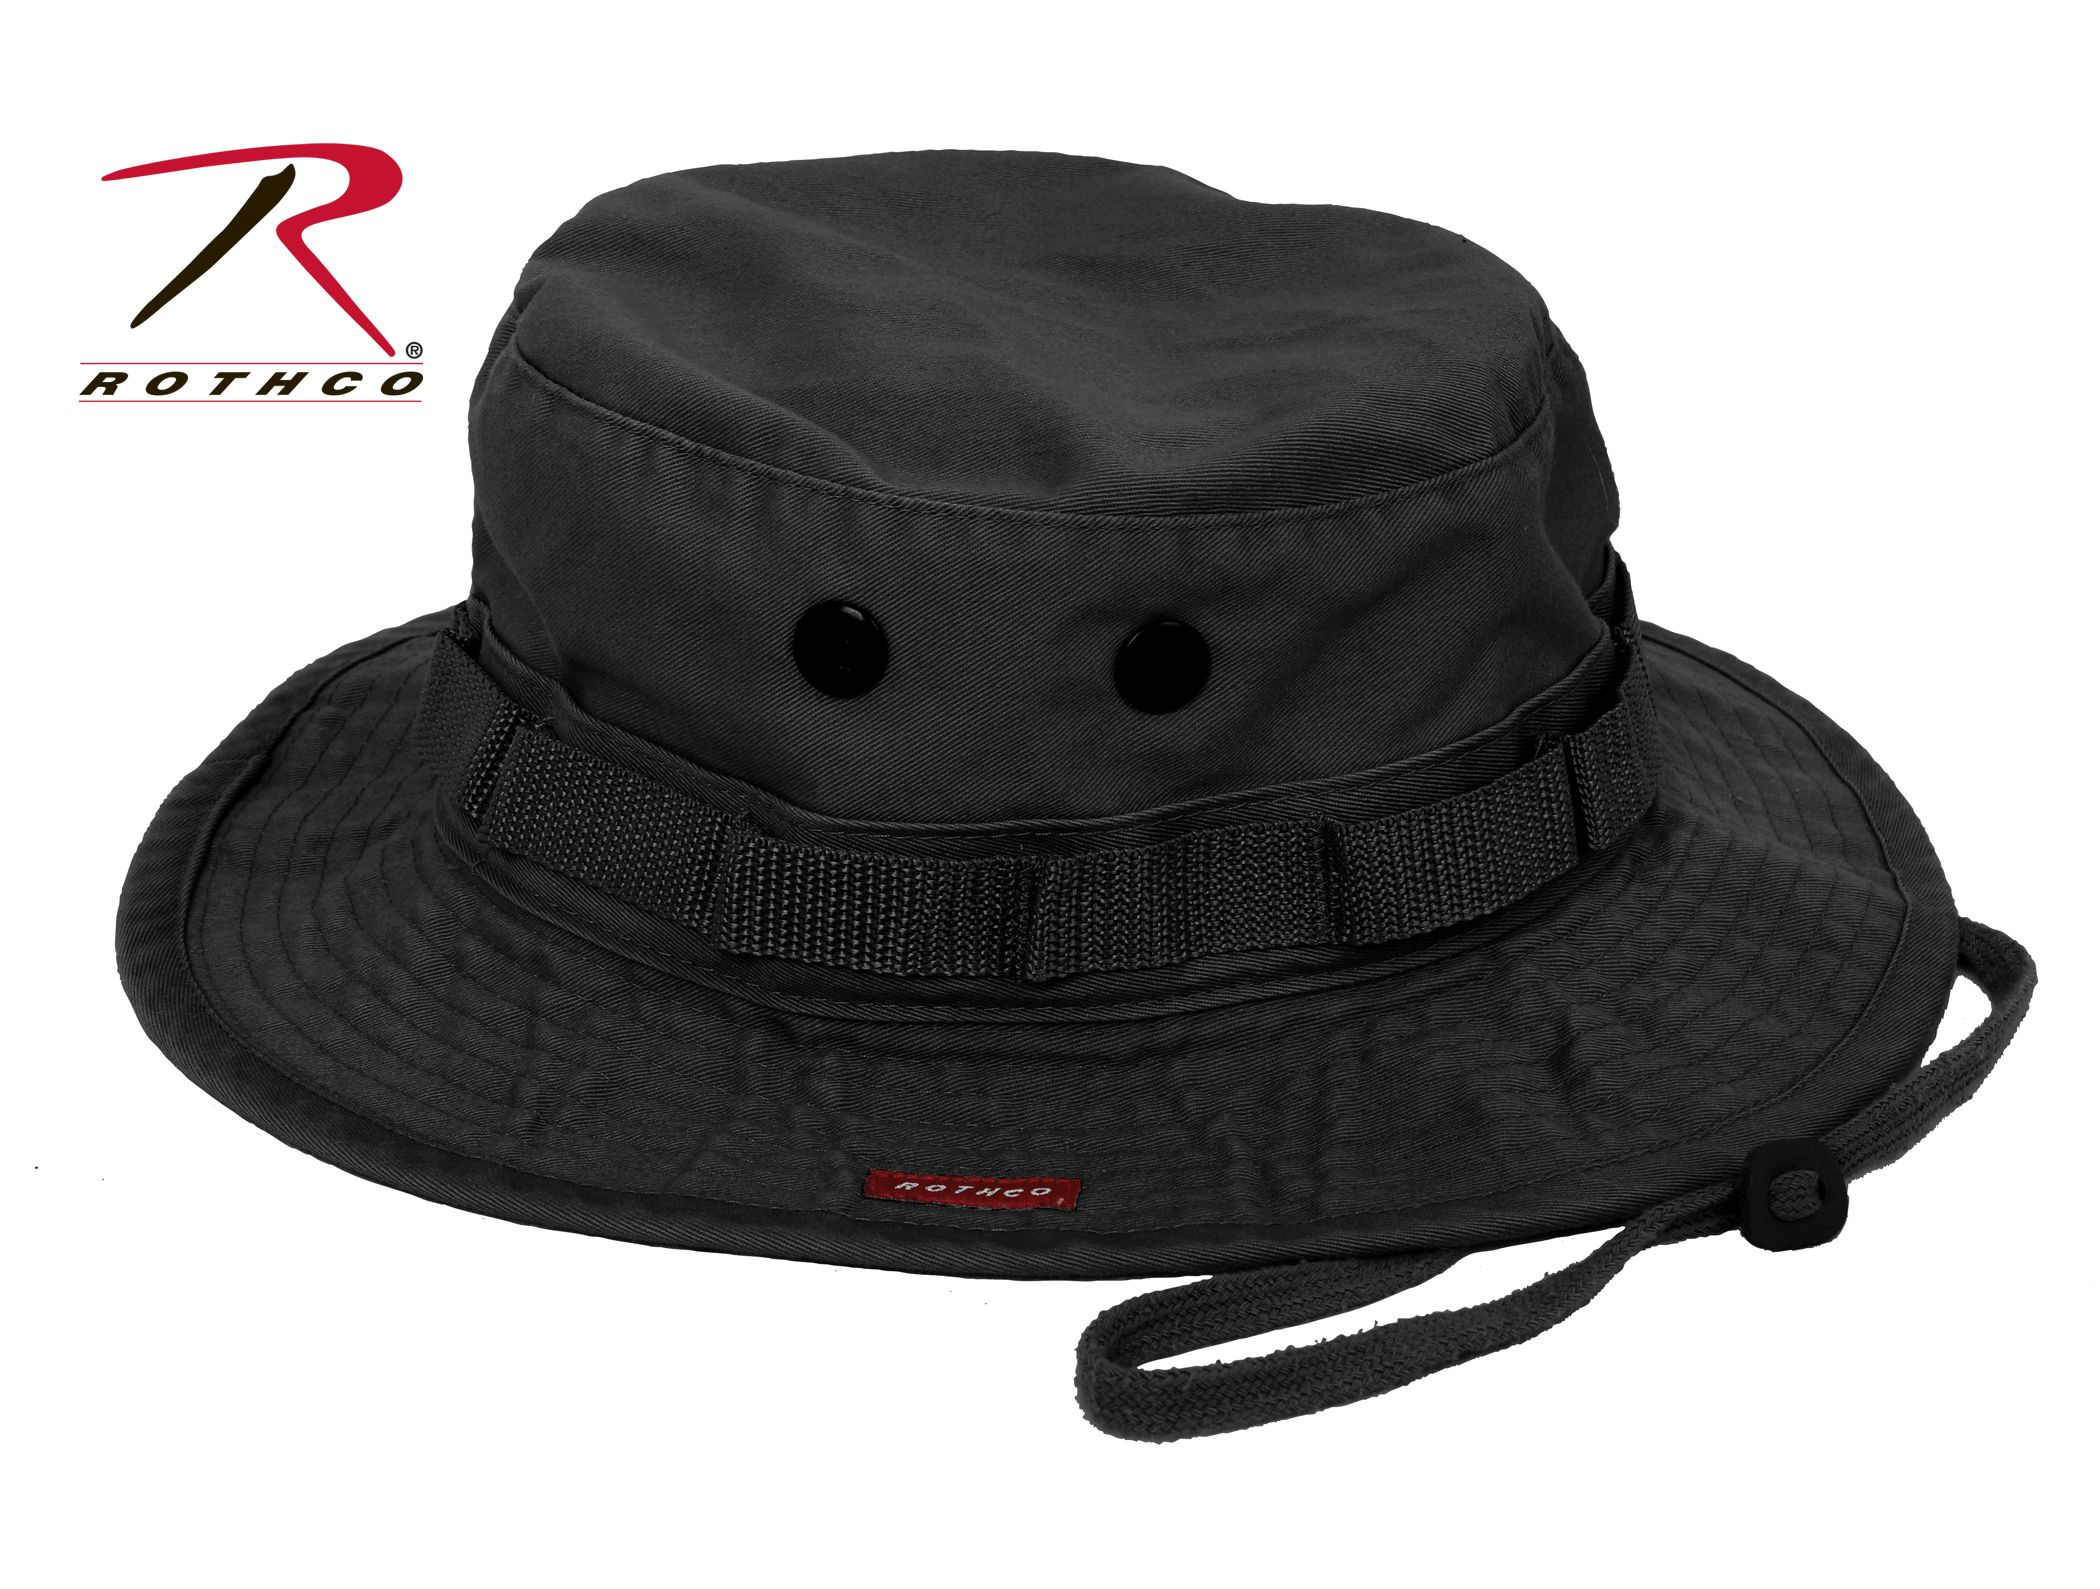 Buy Rothco Vintage Boonie Hat - Rothco Online at Best price - PA 7c2838912a2